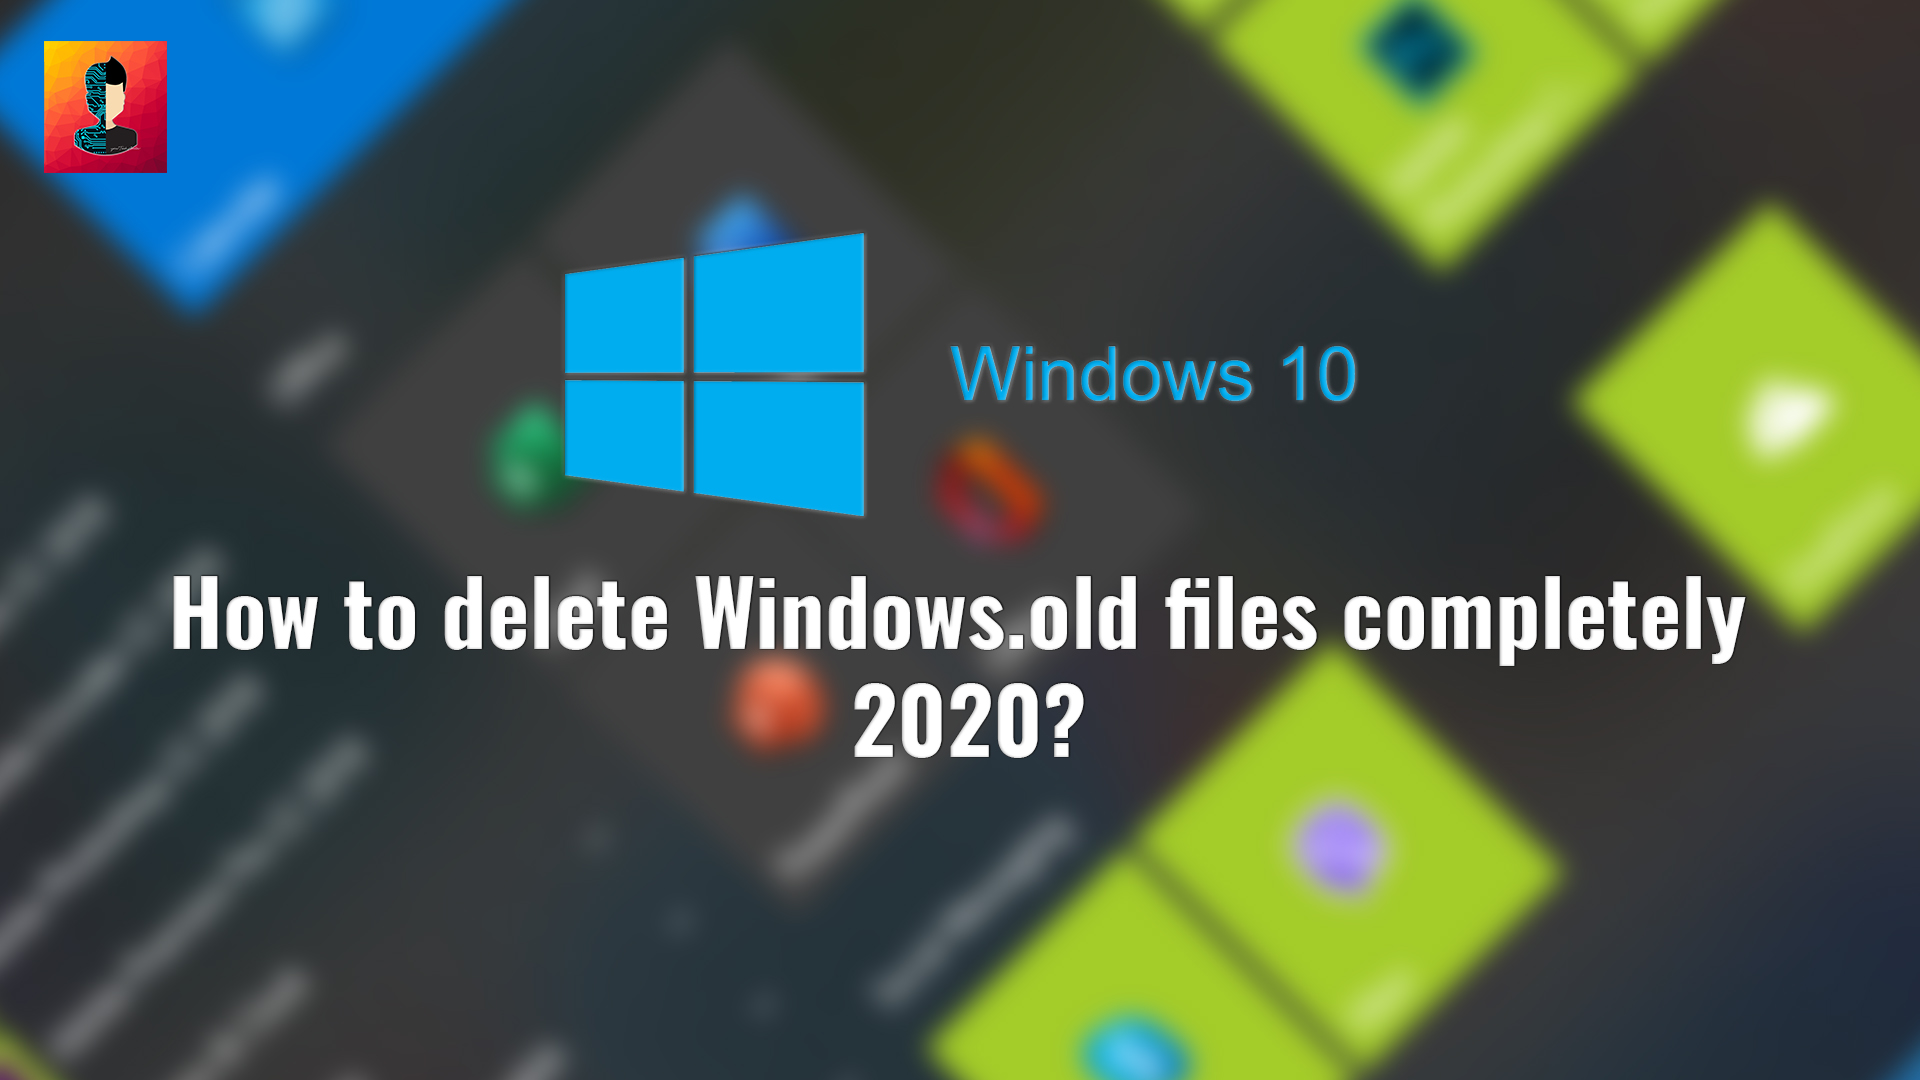 delete windows.old files